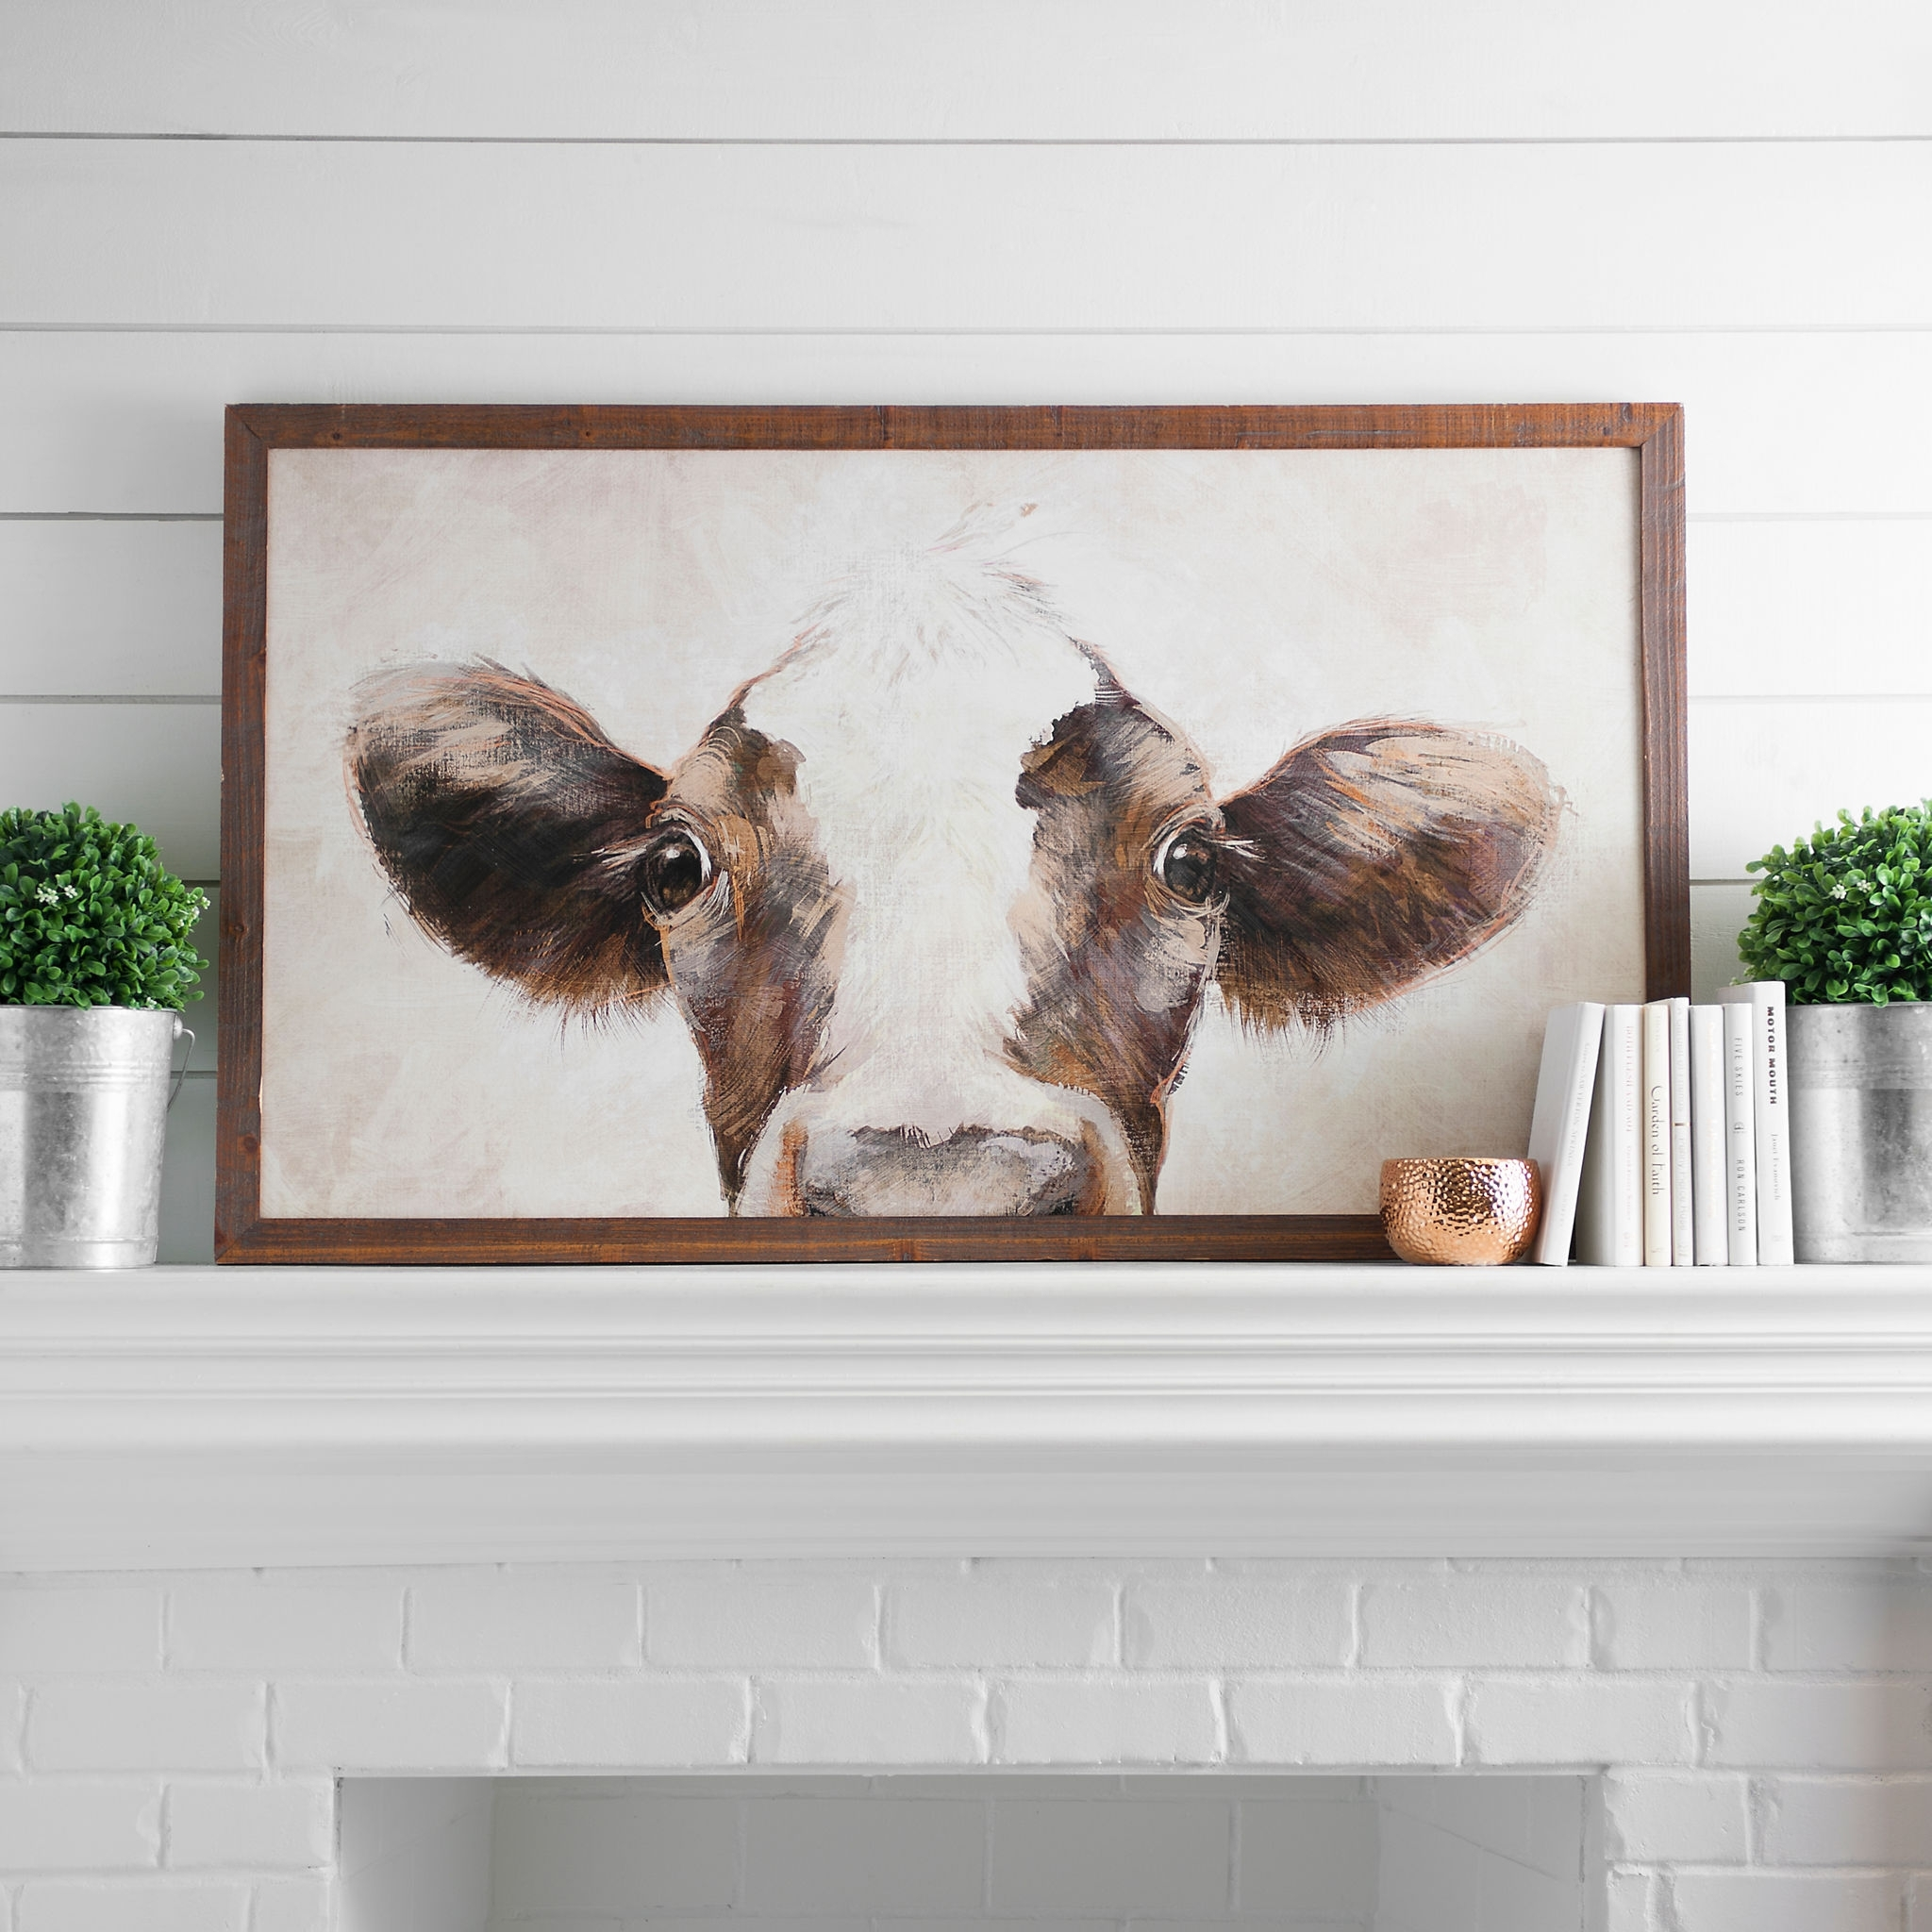 Chocolate Milk Framed Art Print | Printing, Rustic Farmhouse And Within Newest Framed Animal Art Prints (View 4 of 15)